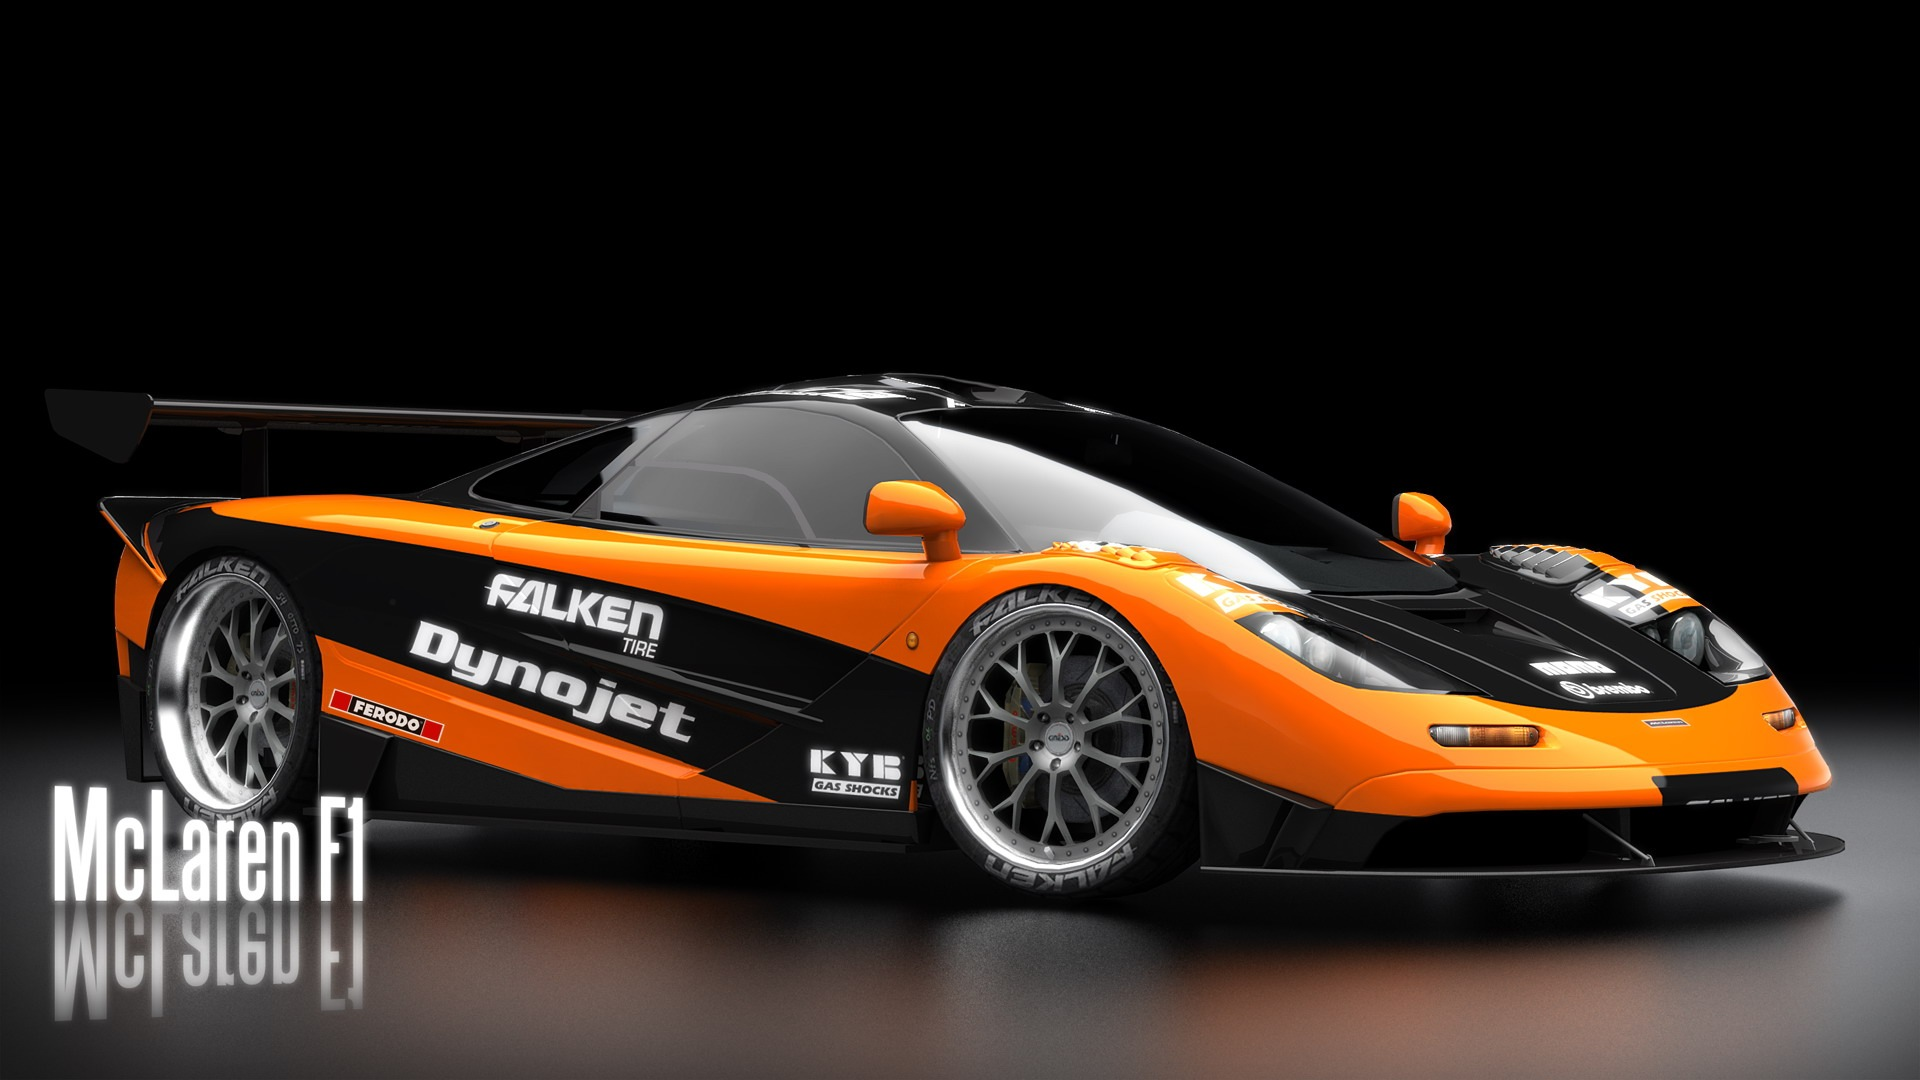 download Mclaren F1 Car Photos